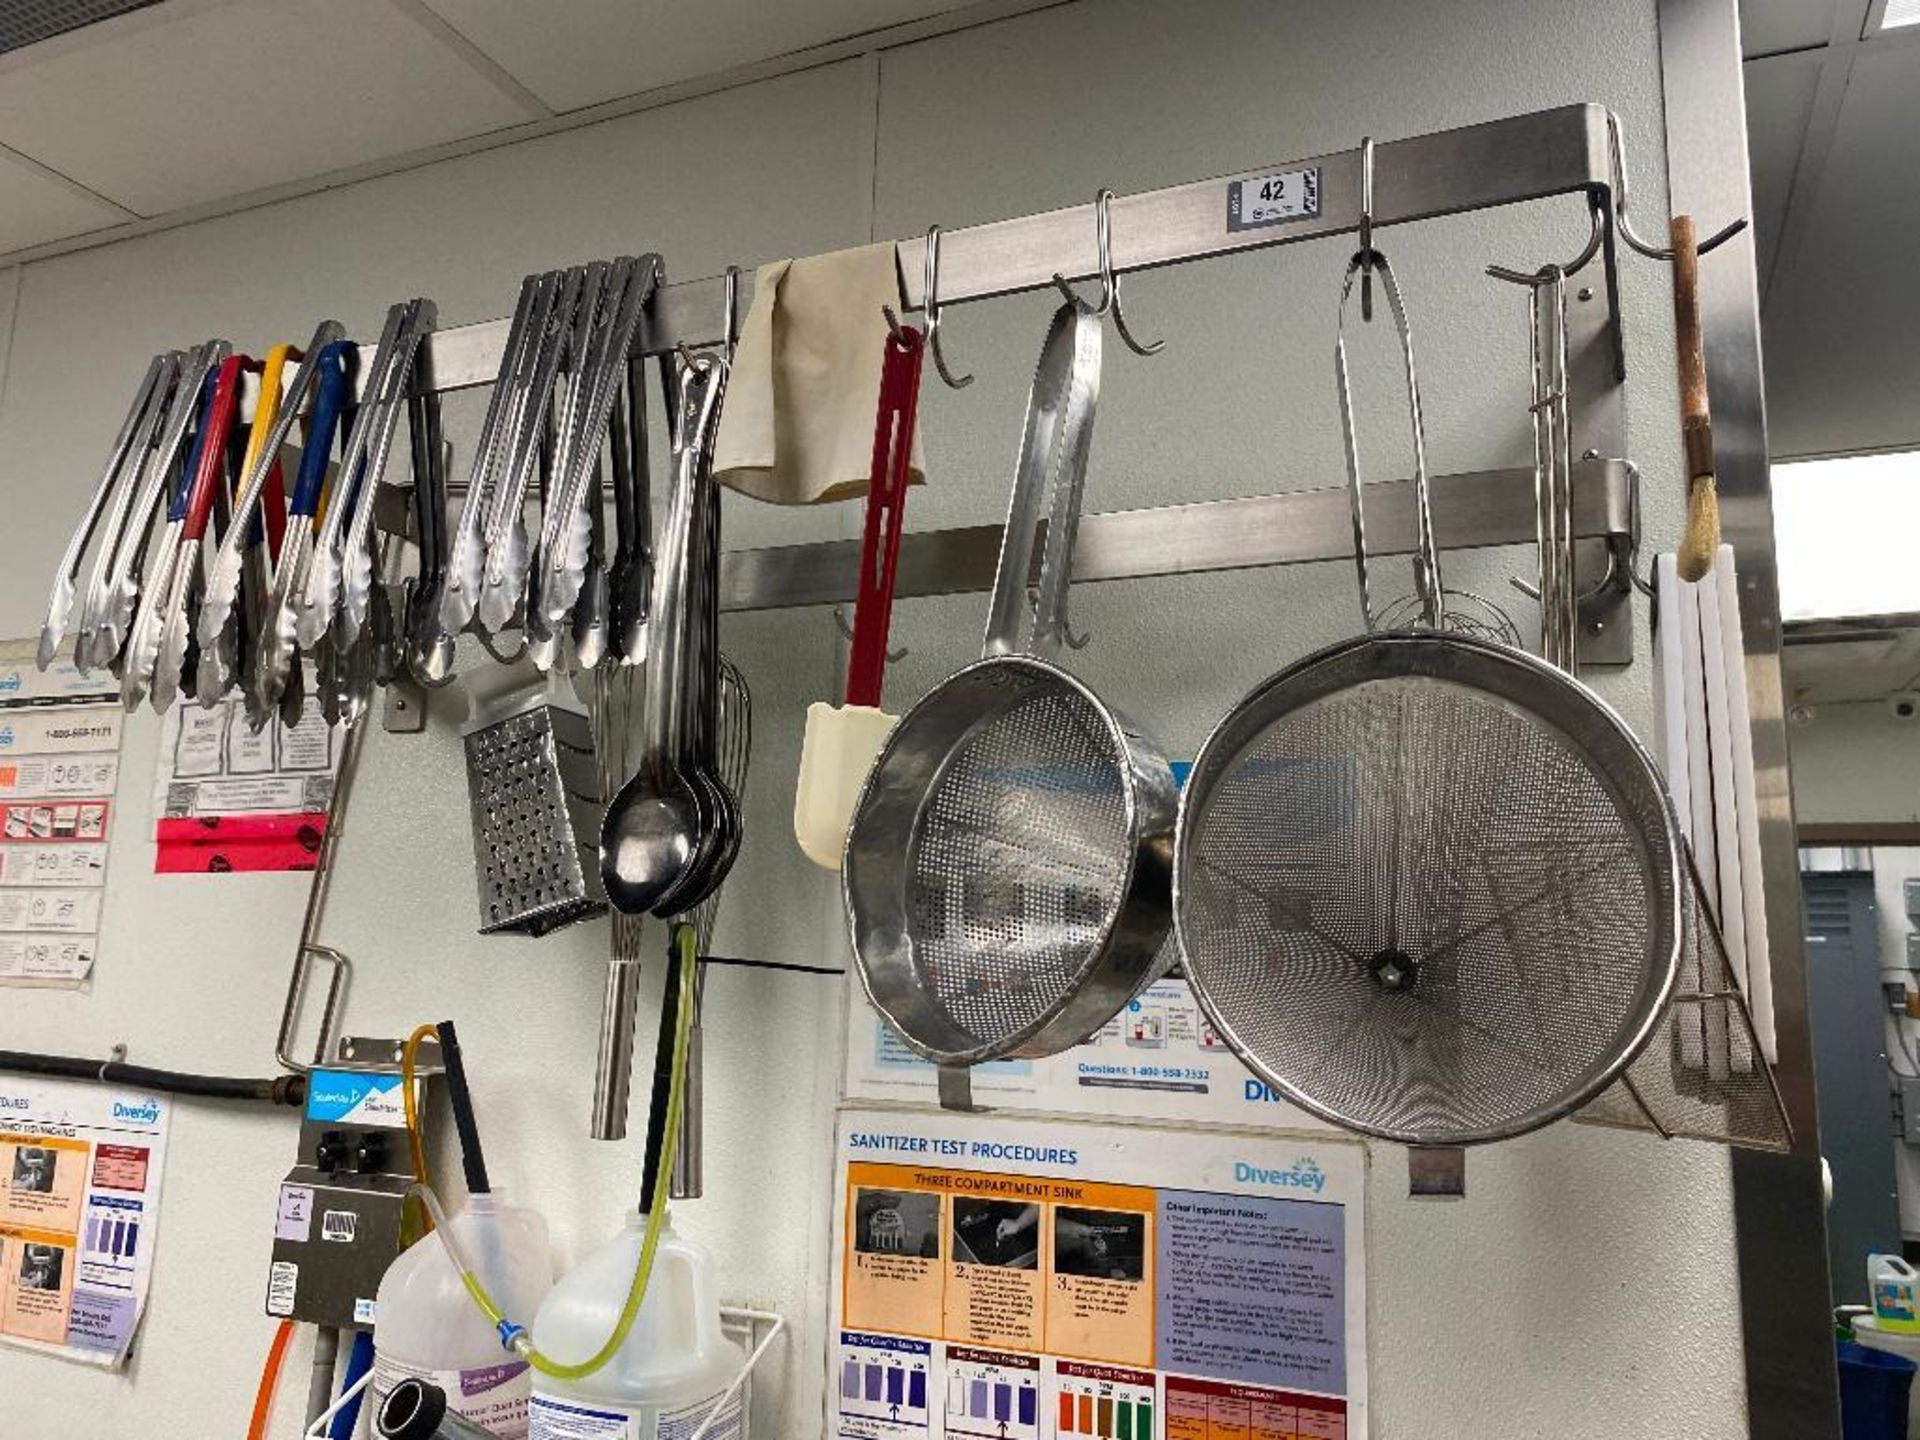 WALL MOUNTED POT SHELF WITH ASSORTED KITCHEN UTENSILS, CUTTING BOARDS & MORE - NOTE: REQUIRES REMOVA